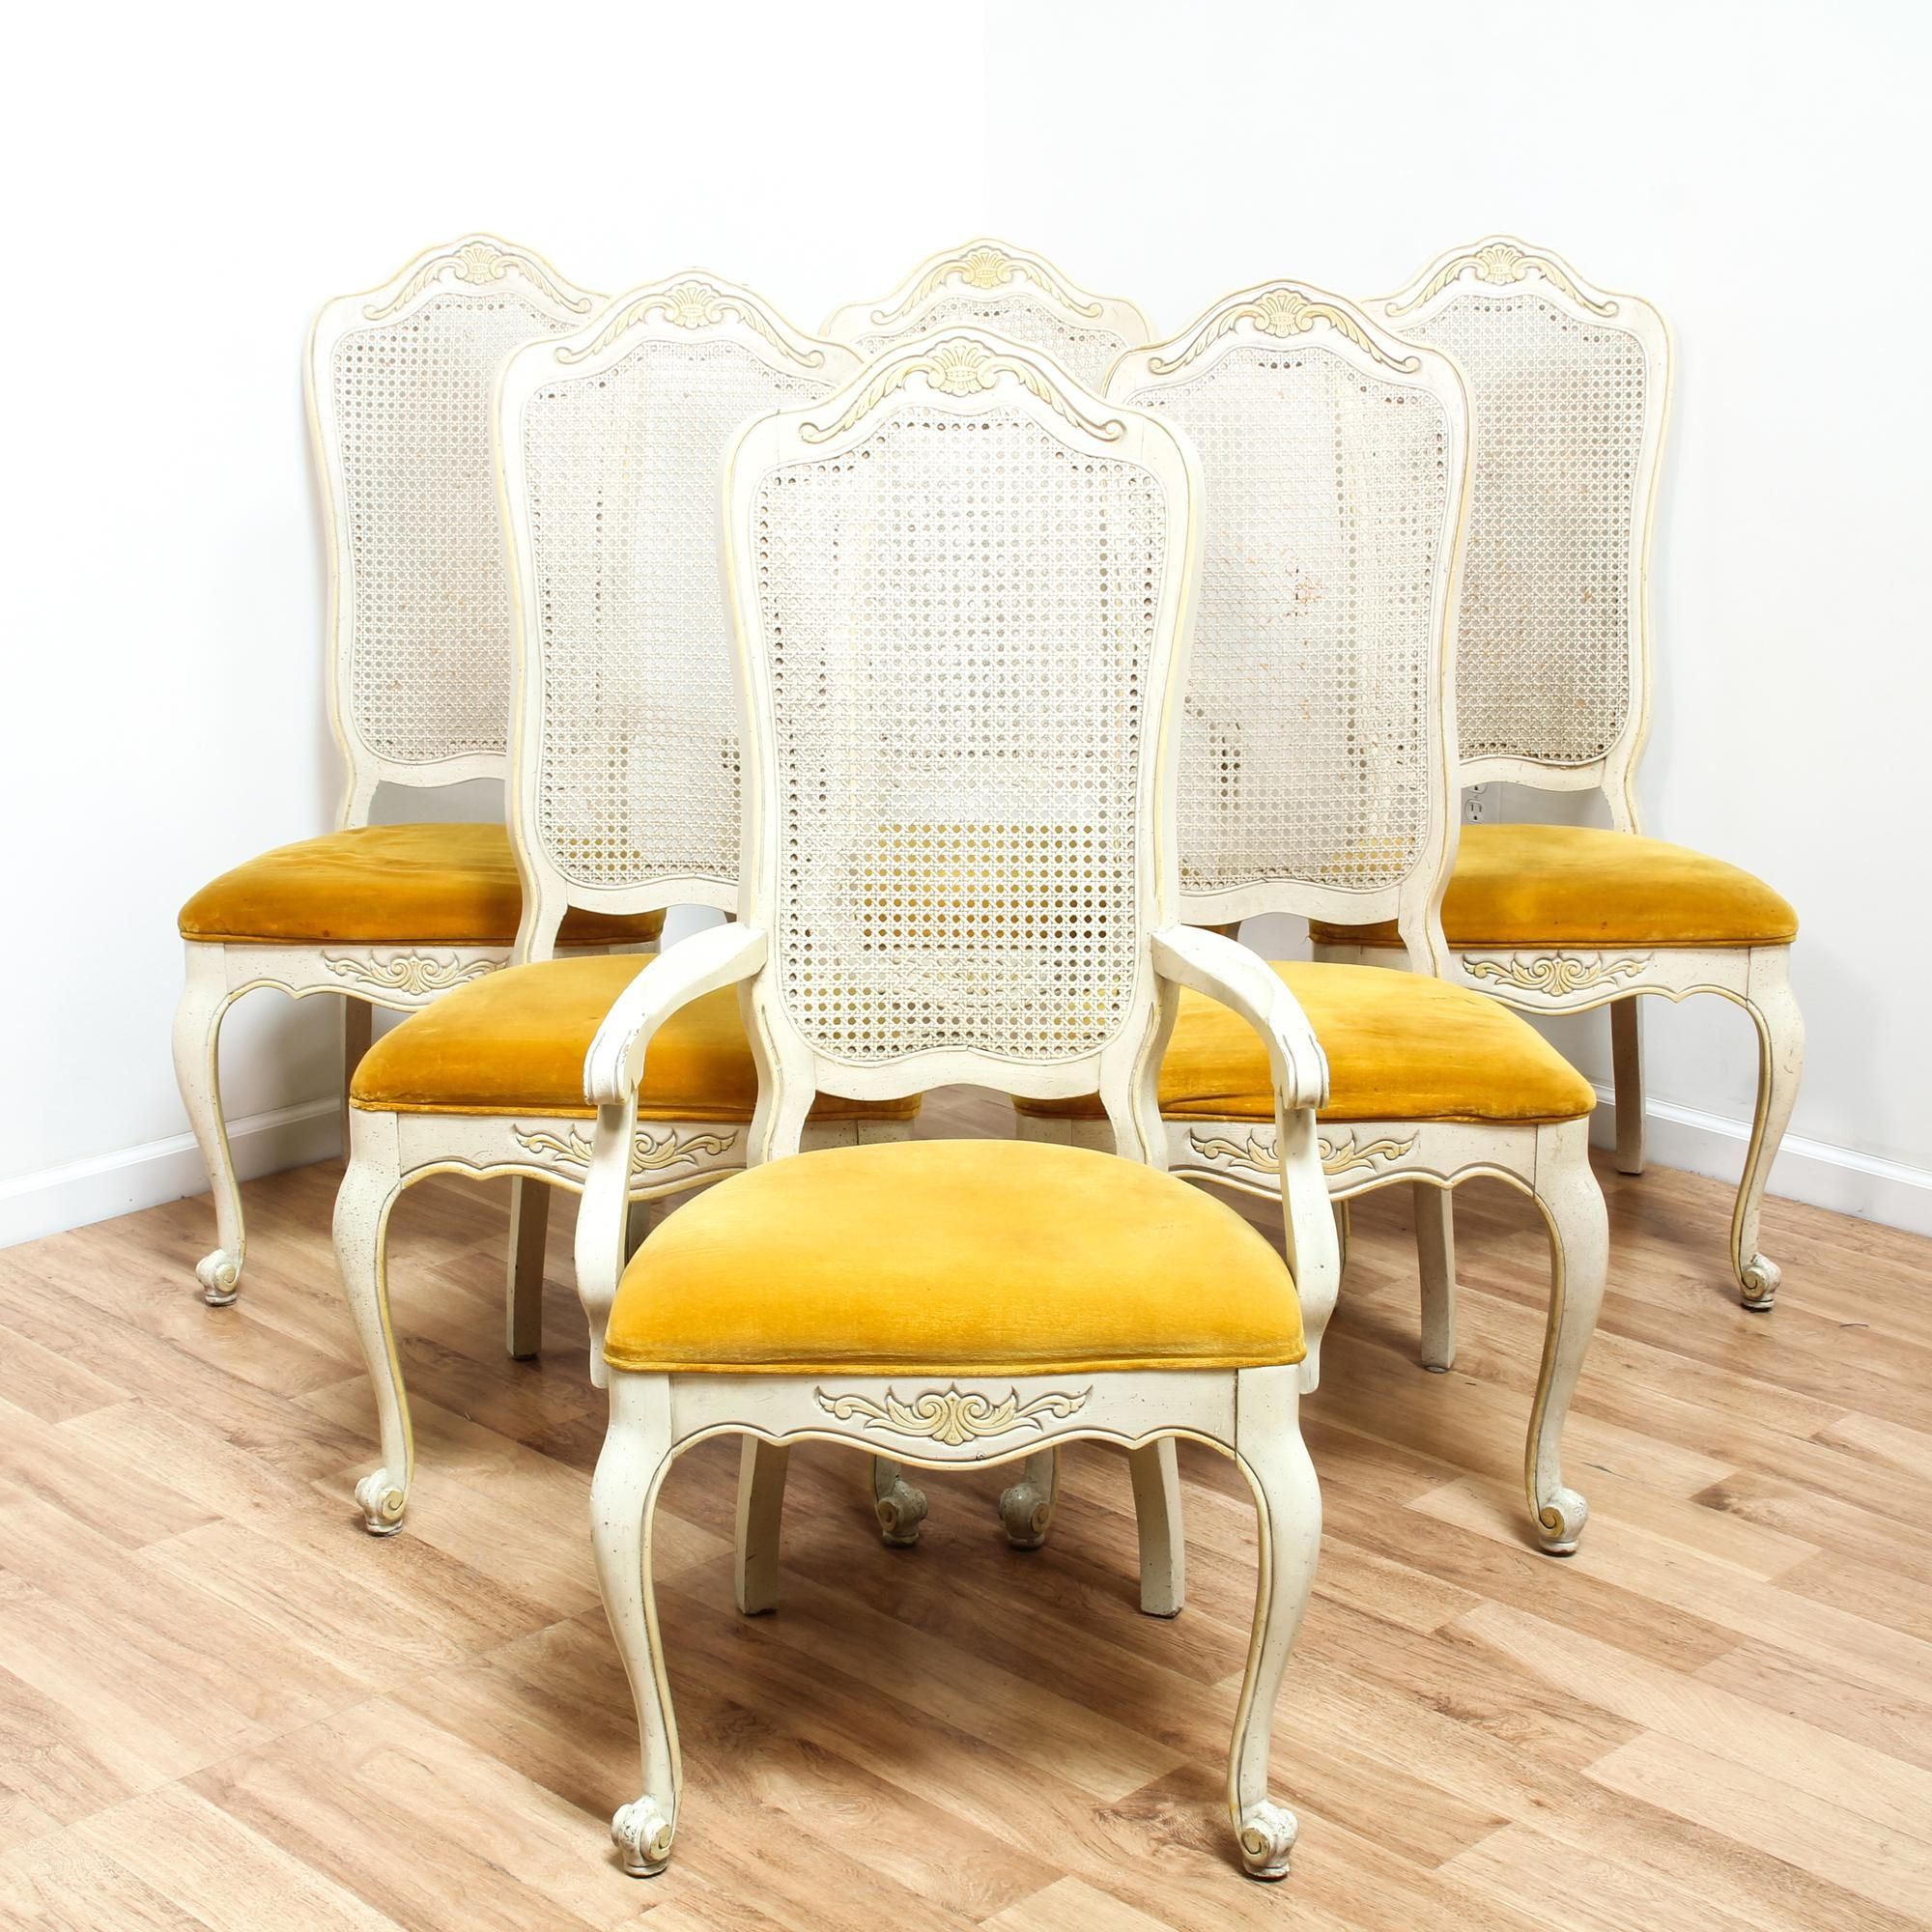 This Dining Chair Set Is Featured In A Solid Wood With A White Finish This French Provincial Style Side Chairs Hav White Dining Chairs Furniture Dining Chairs